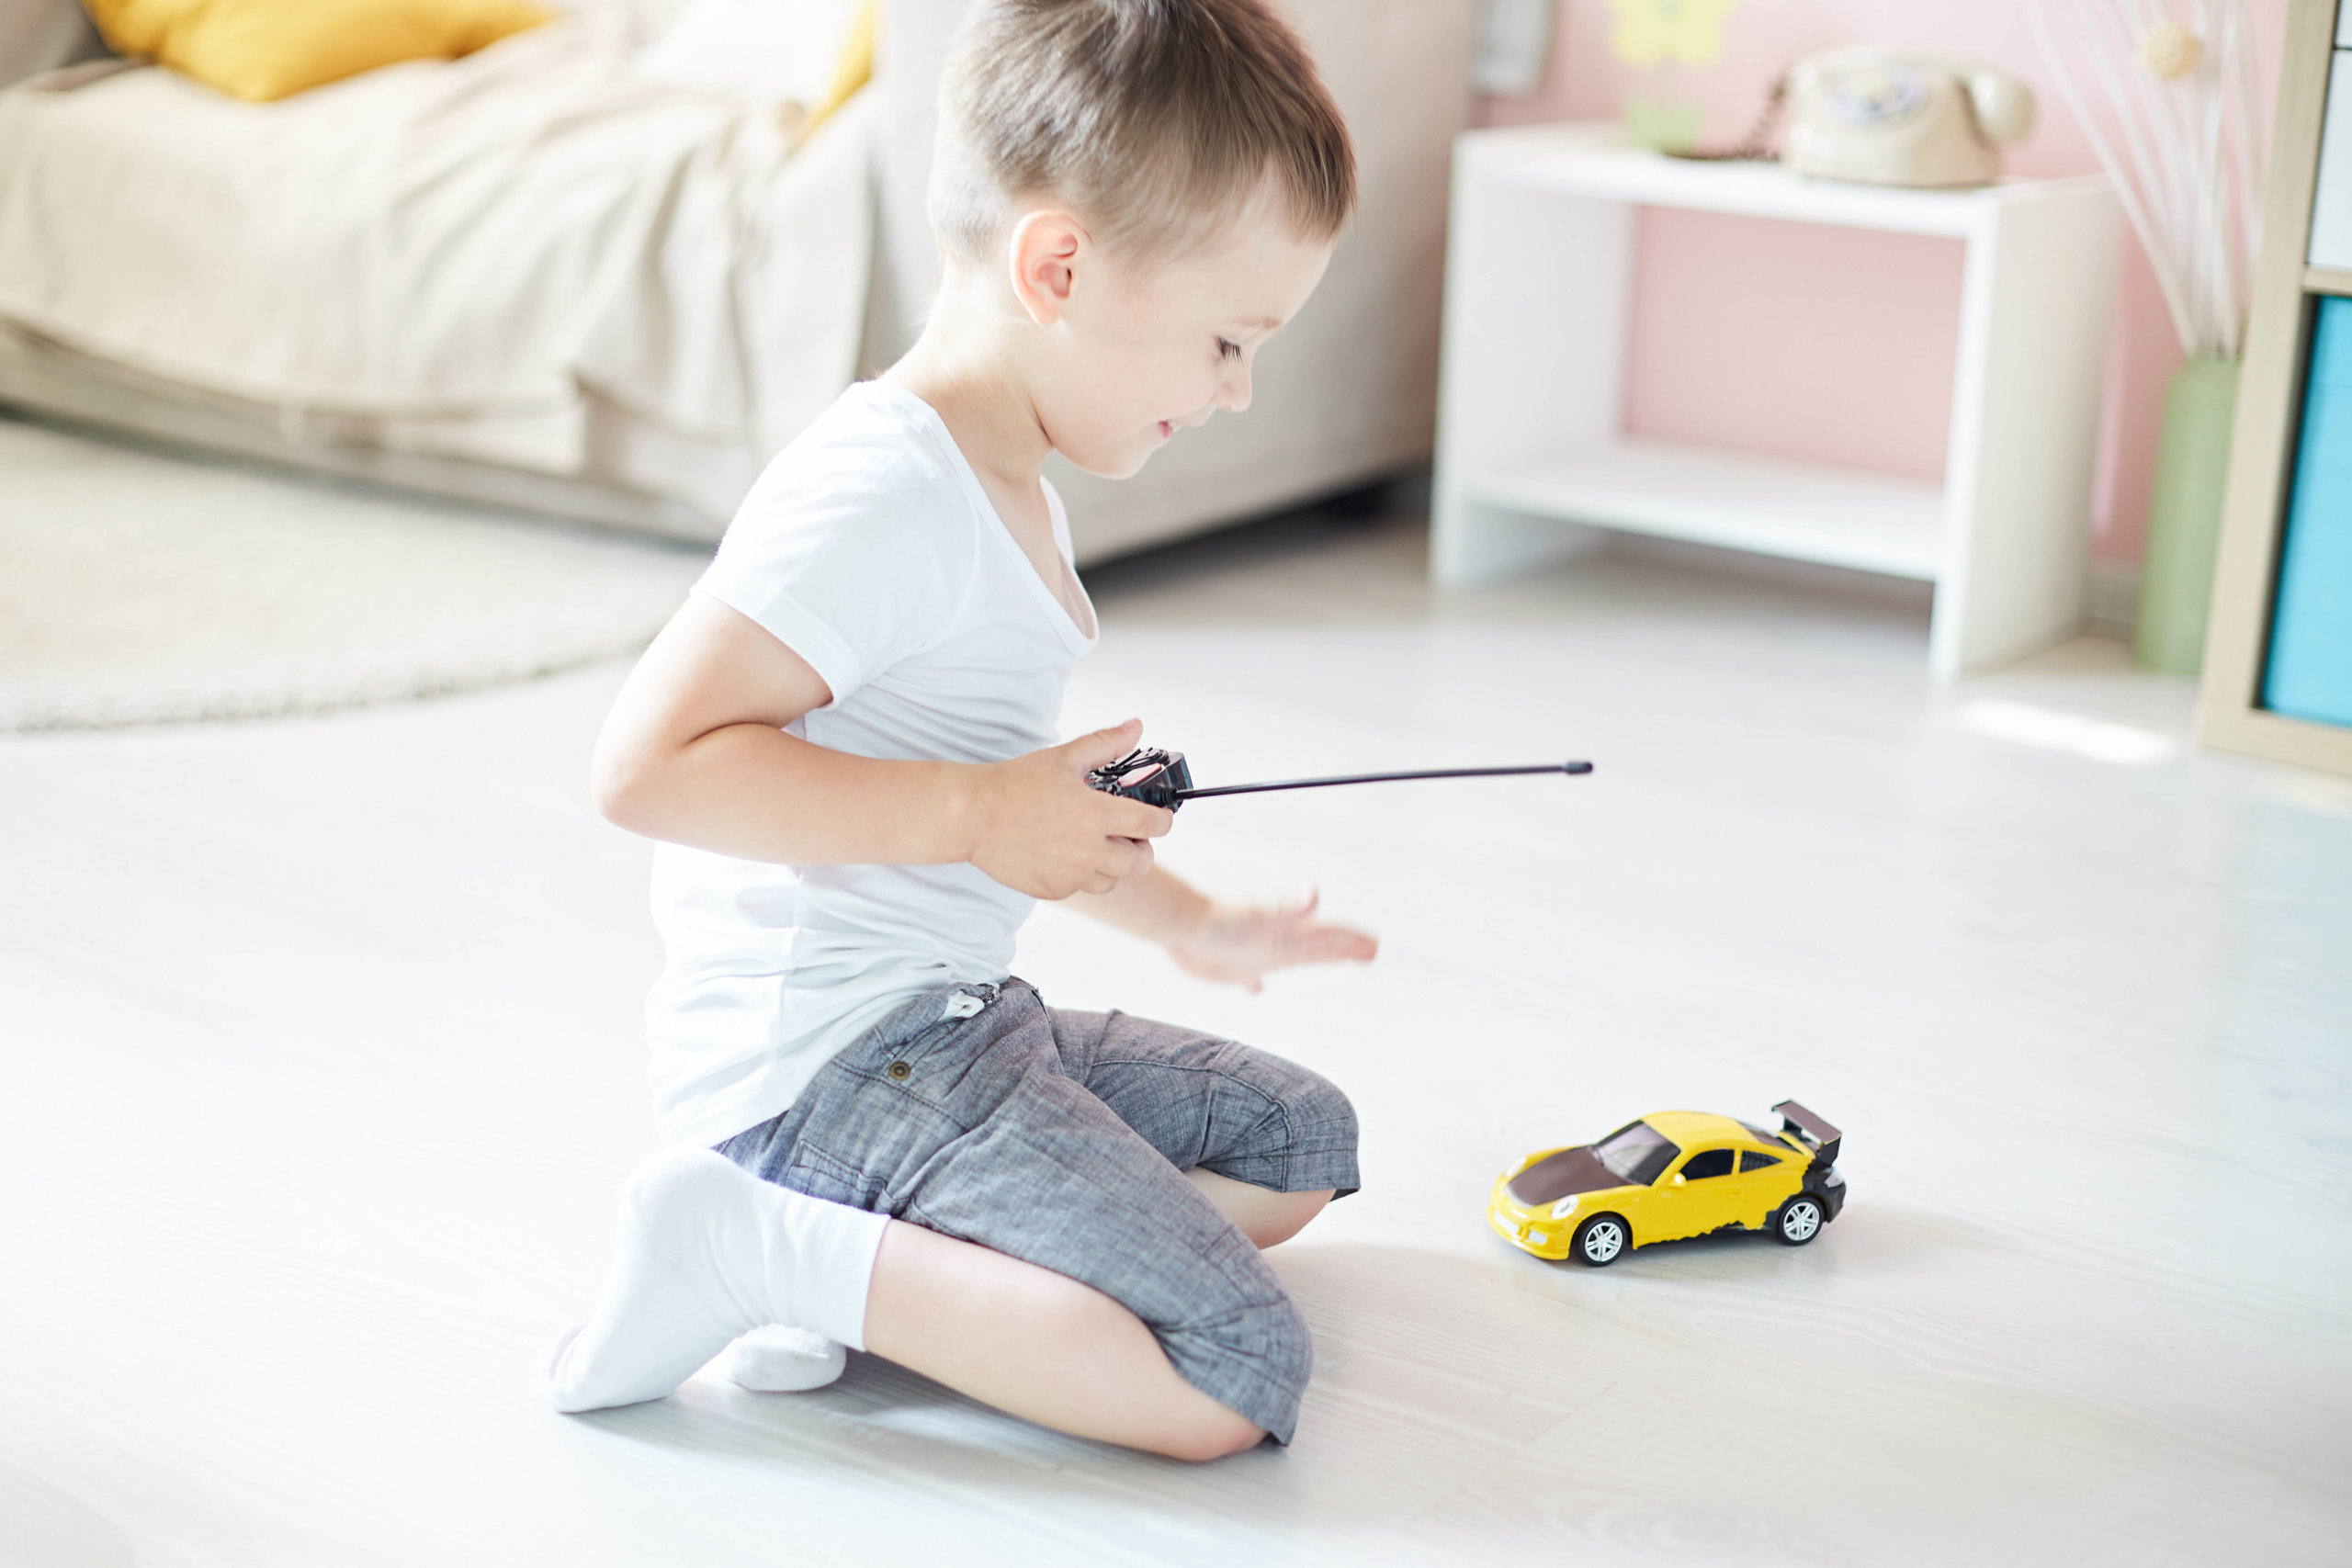 12 Best Remote Control Cars for Toddlers